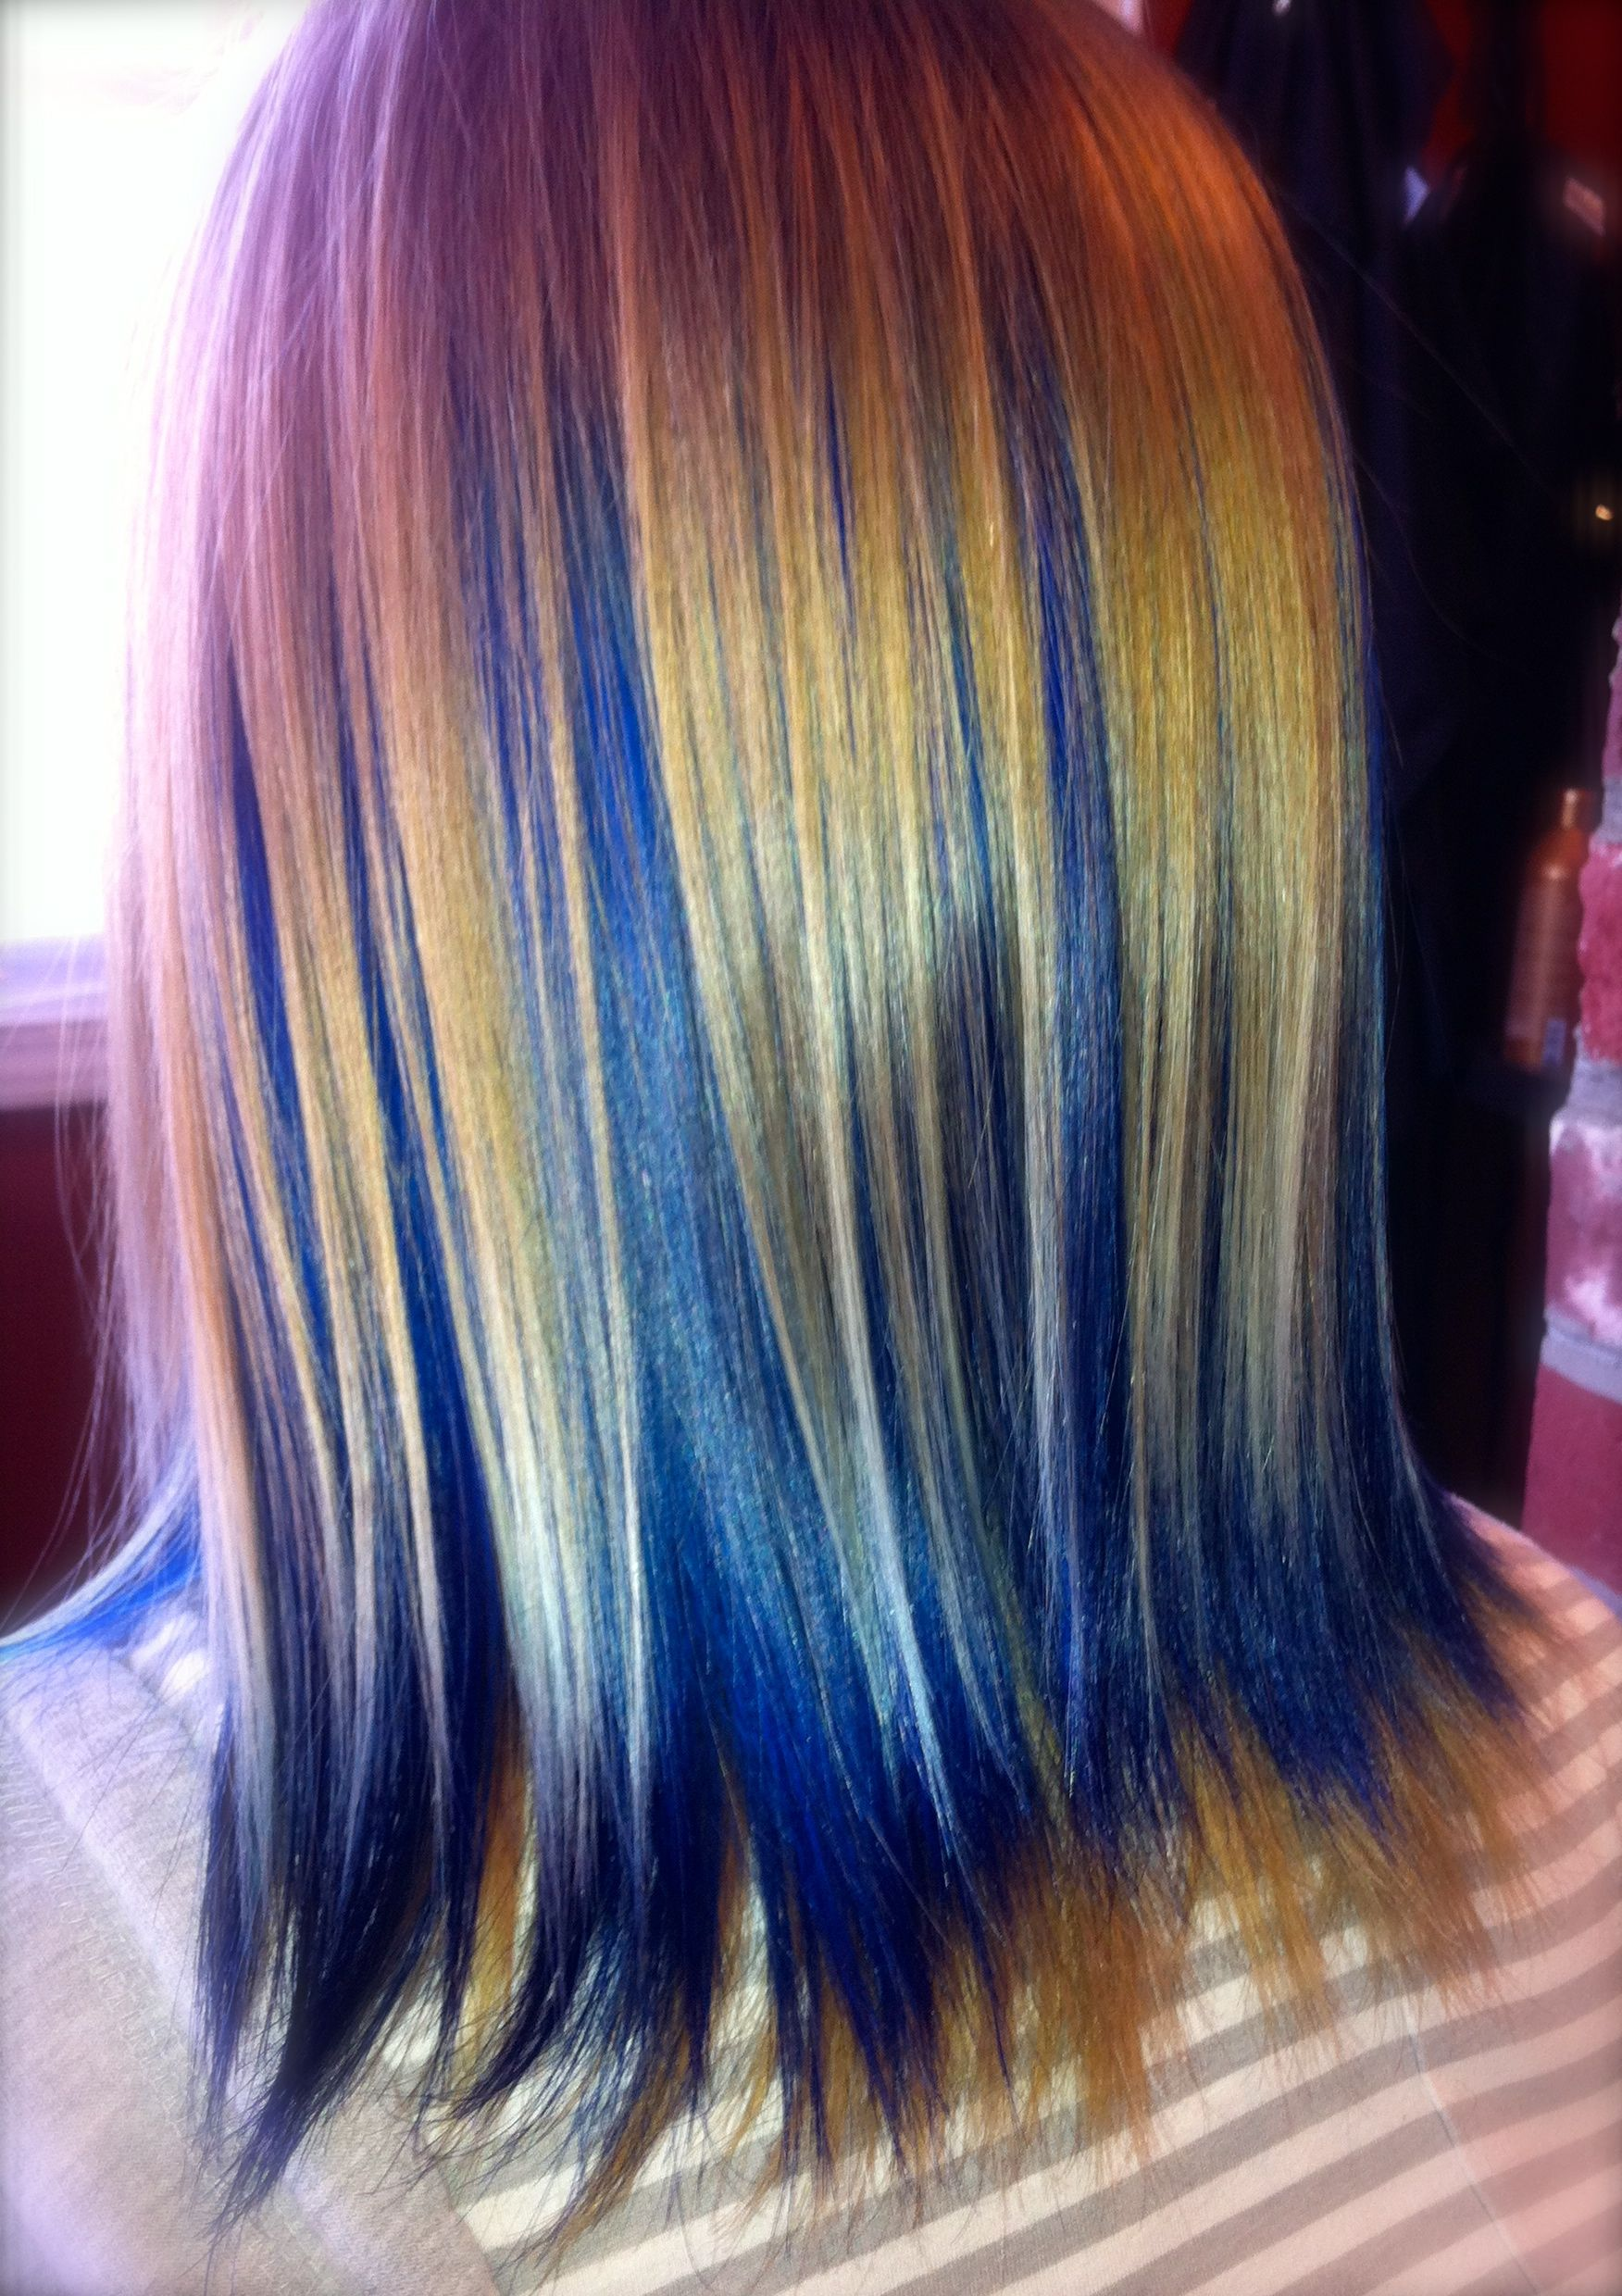 Imagine black for the blonde and red for the blue thatus my next